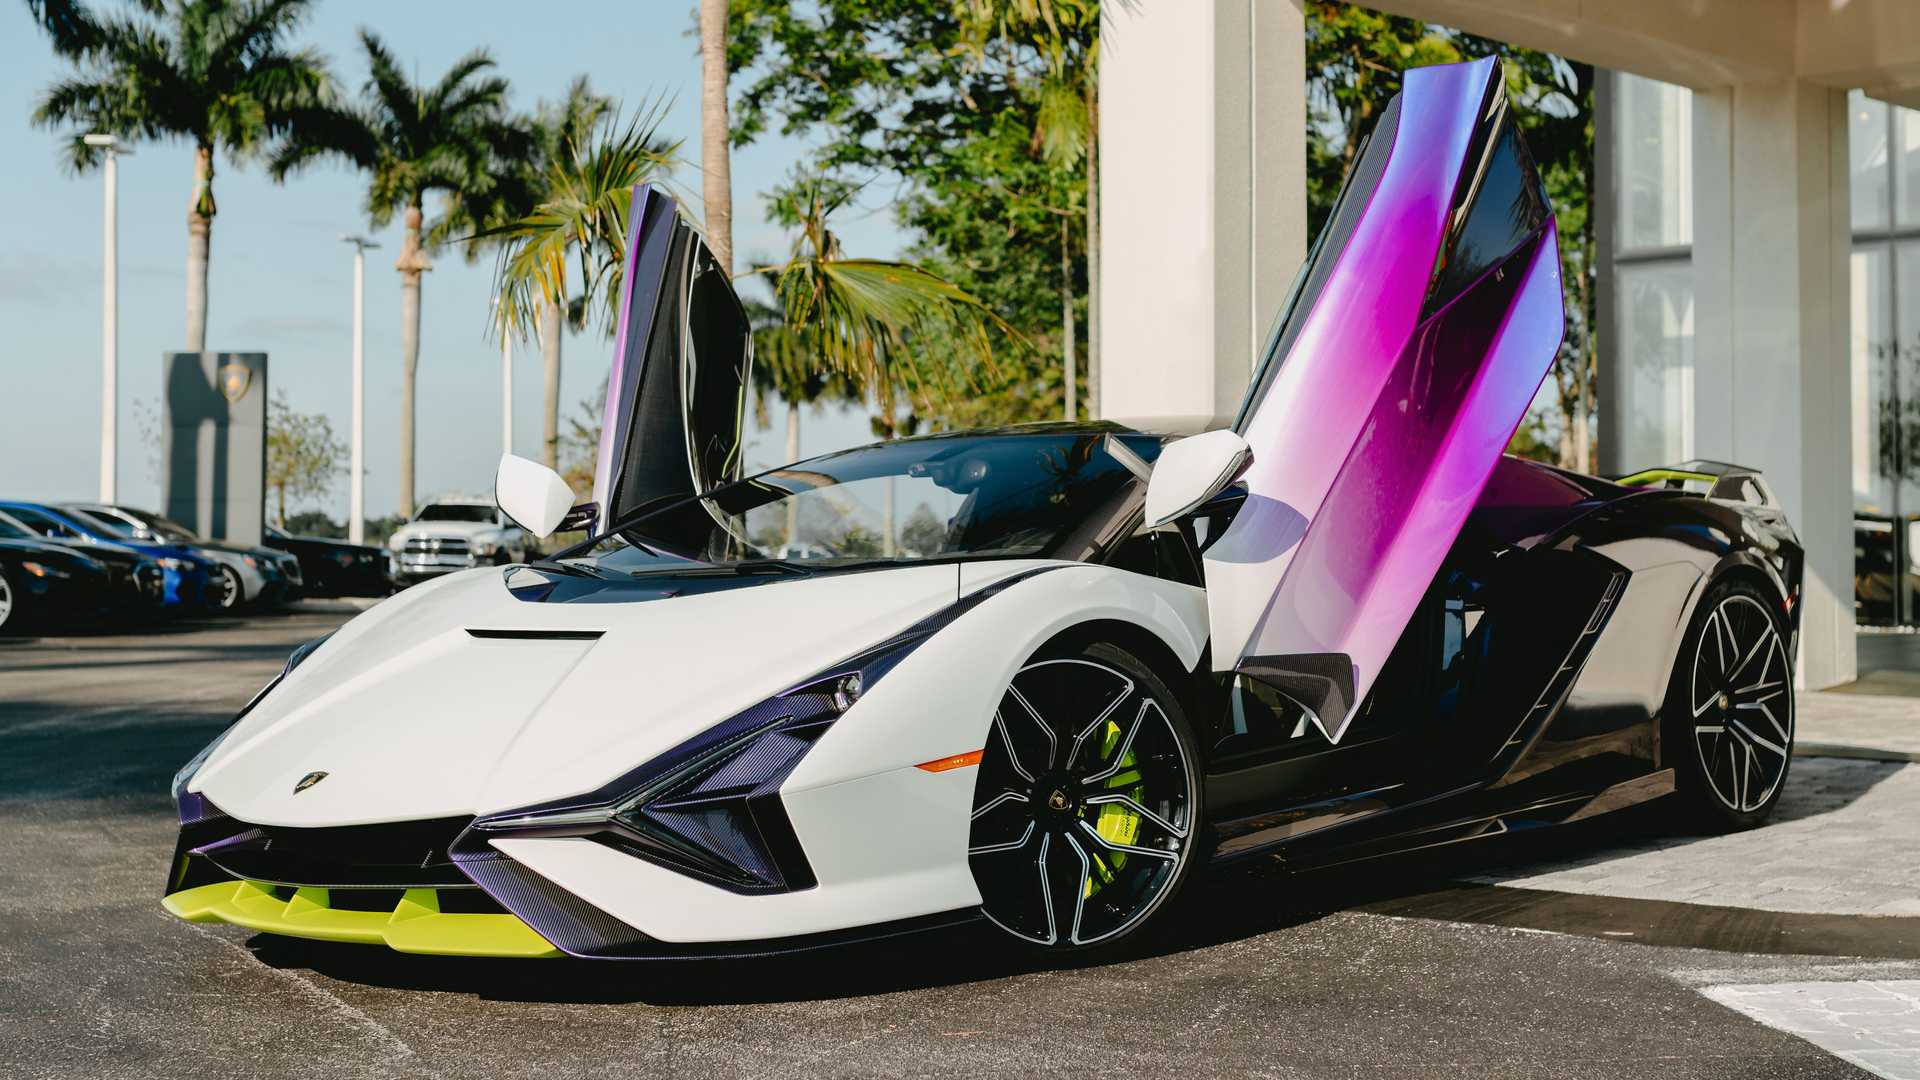 Lamborghini Sian In Purple, Green, And White Door Up Side Photo By Juan Pablo Saenz